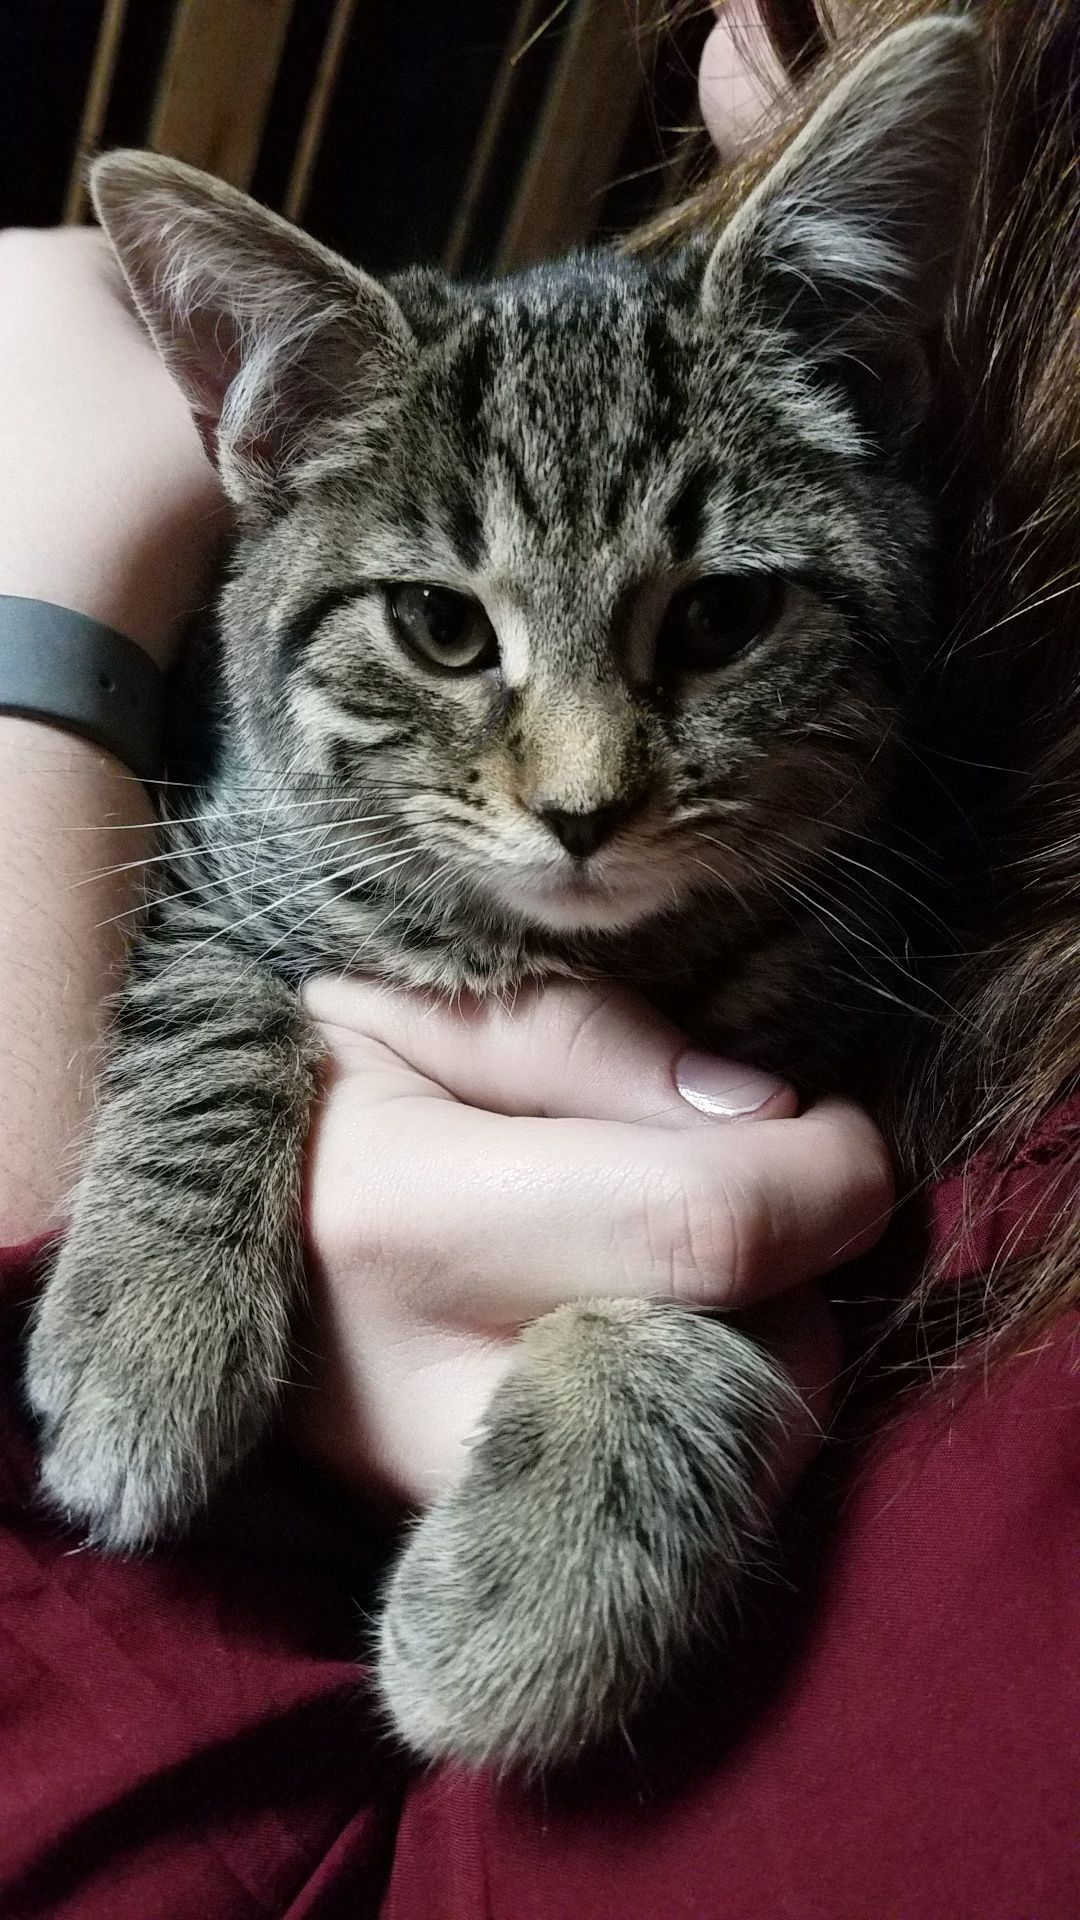 My Girlfriend Just Adopted This Kitten She Finally Decided To Stop Running Around And Let Us Hold Her Http Ift Tt 2a Me As A Girlfriend Cat Day Cute Puppies